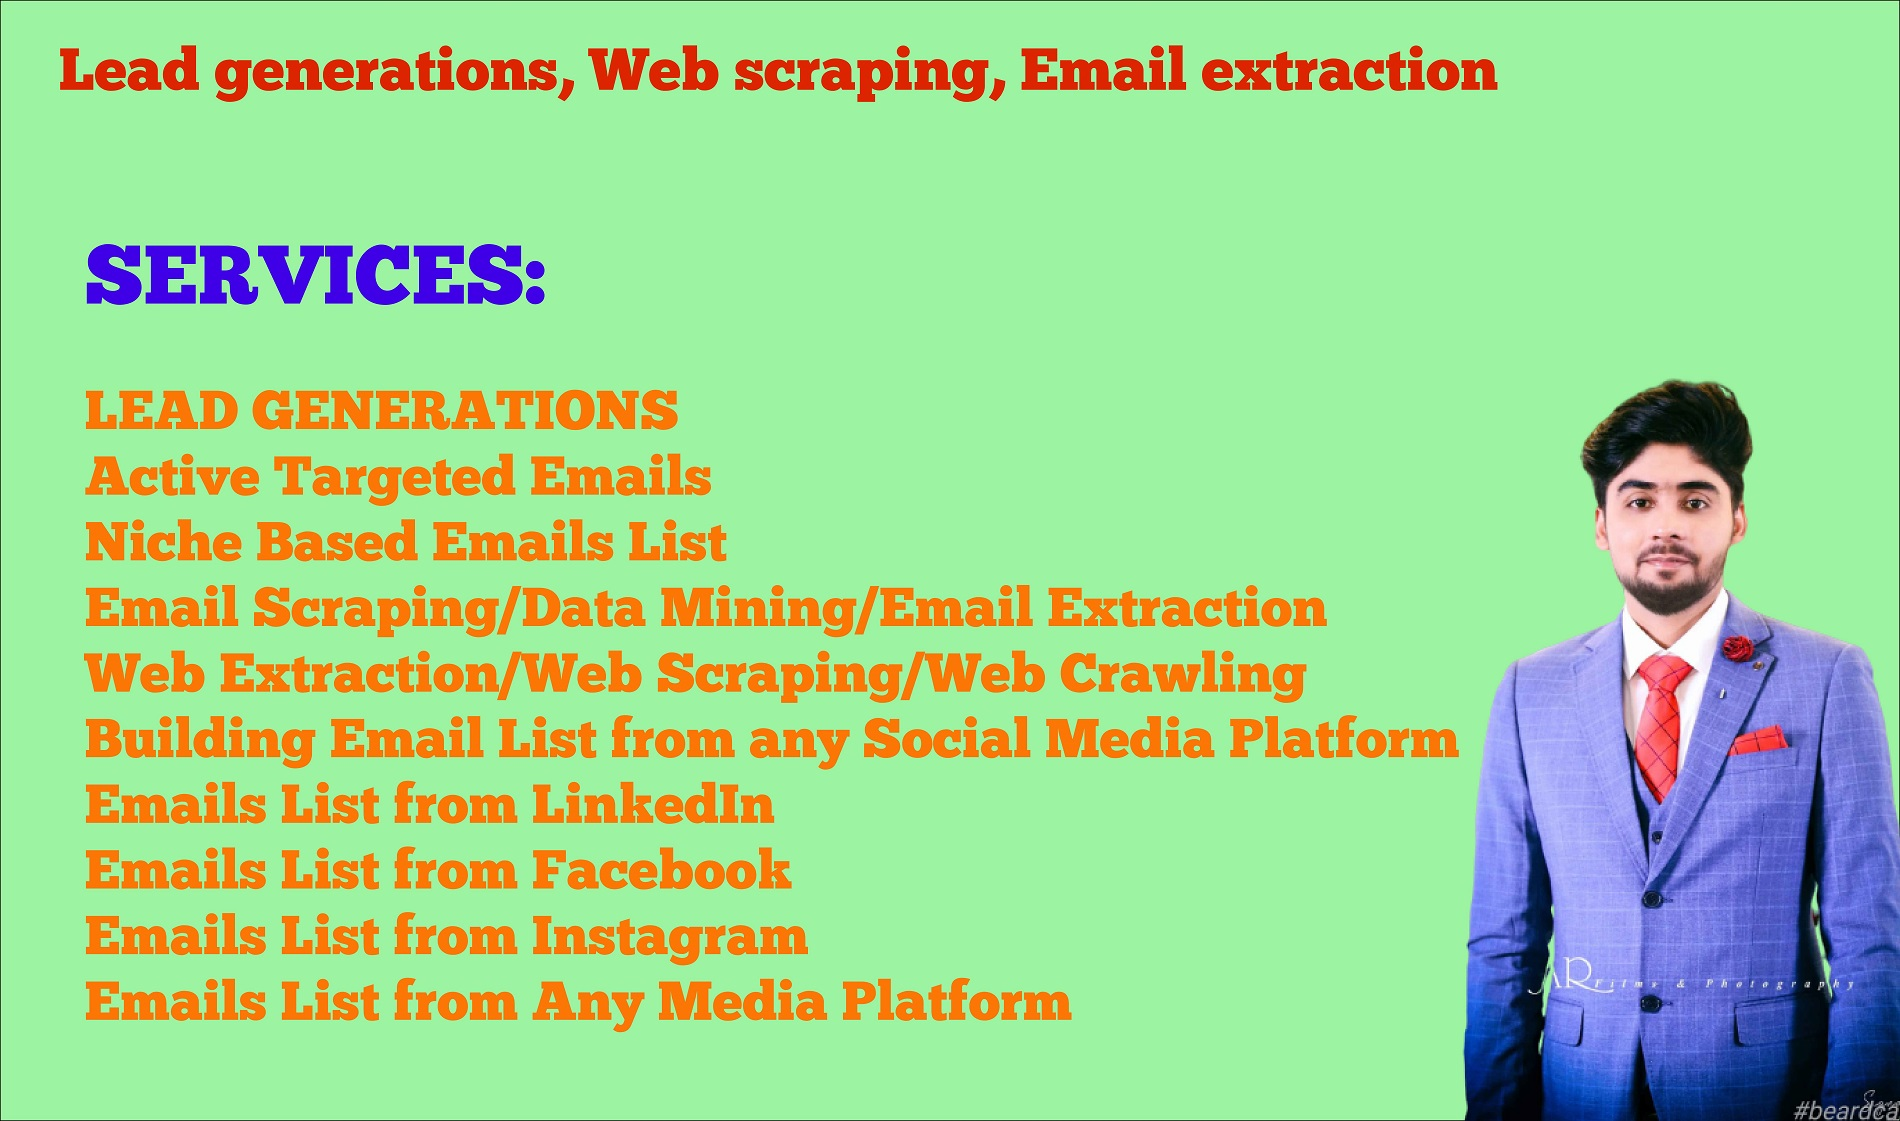 I will do lead generation, web scraping, email extraction in 24h